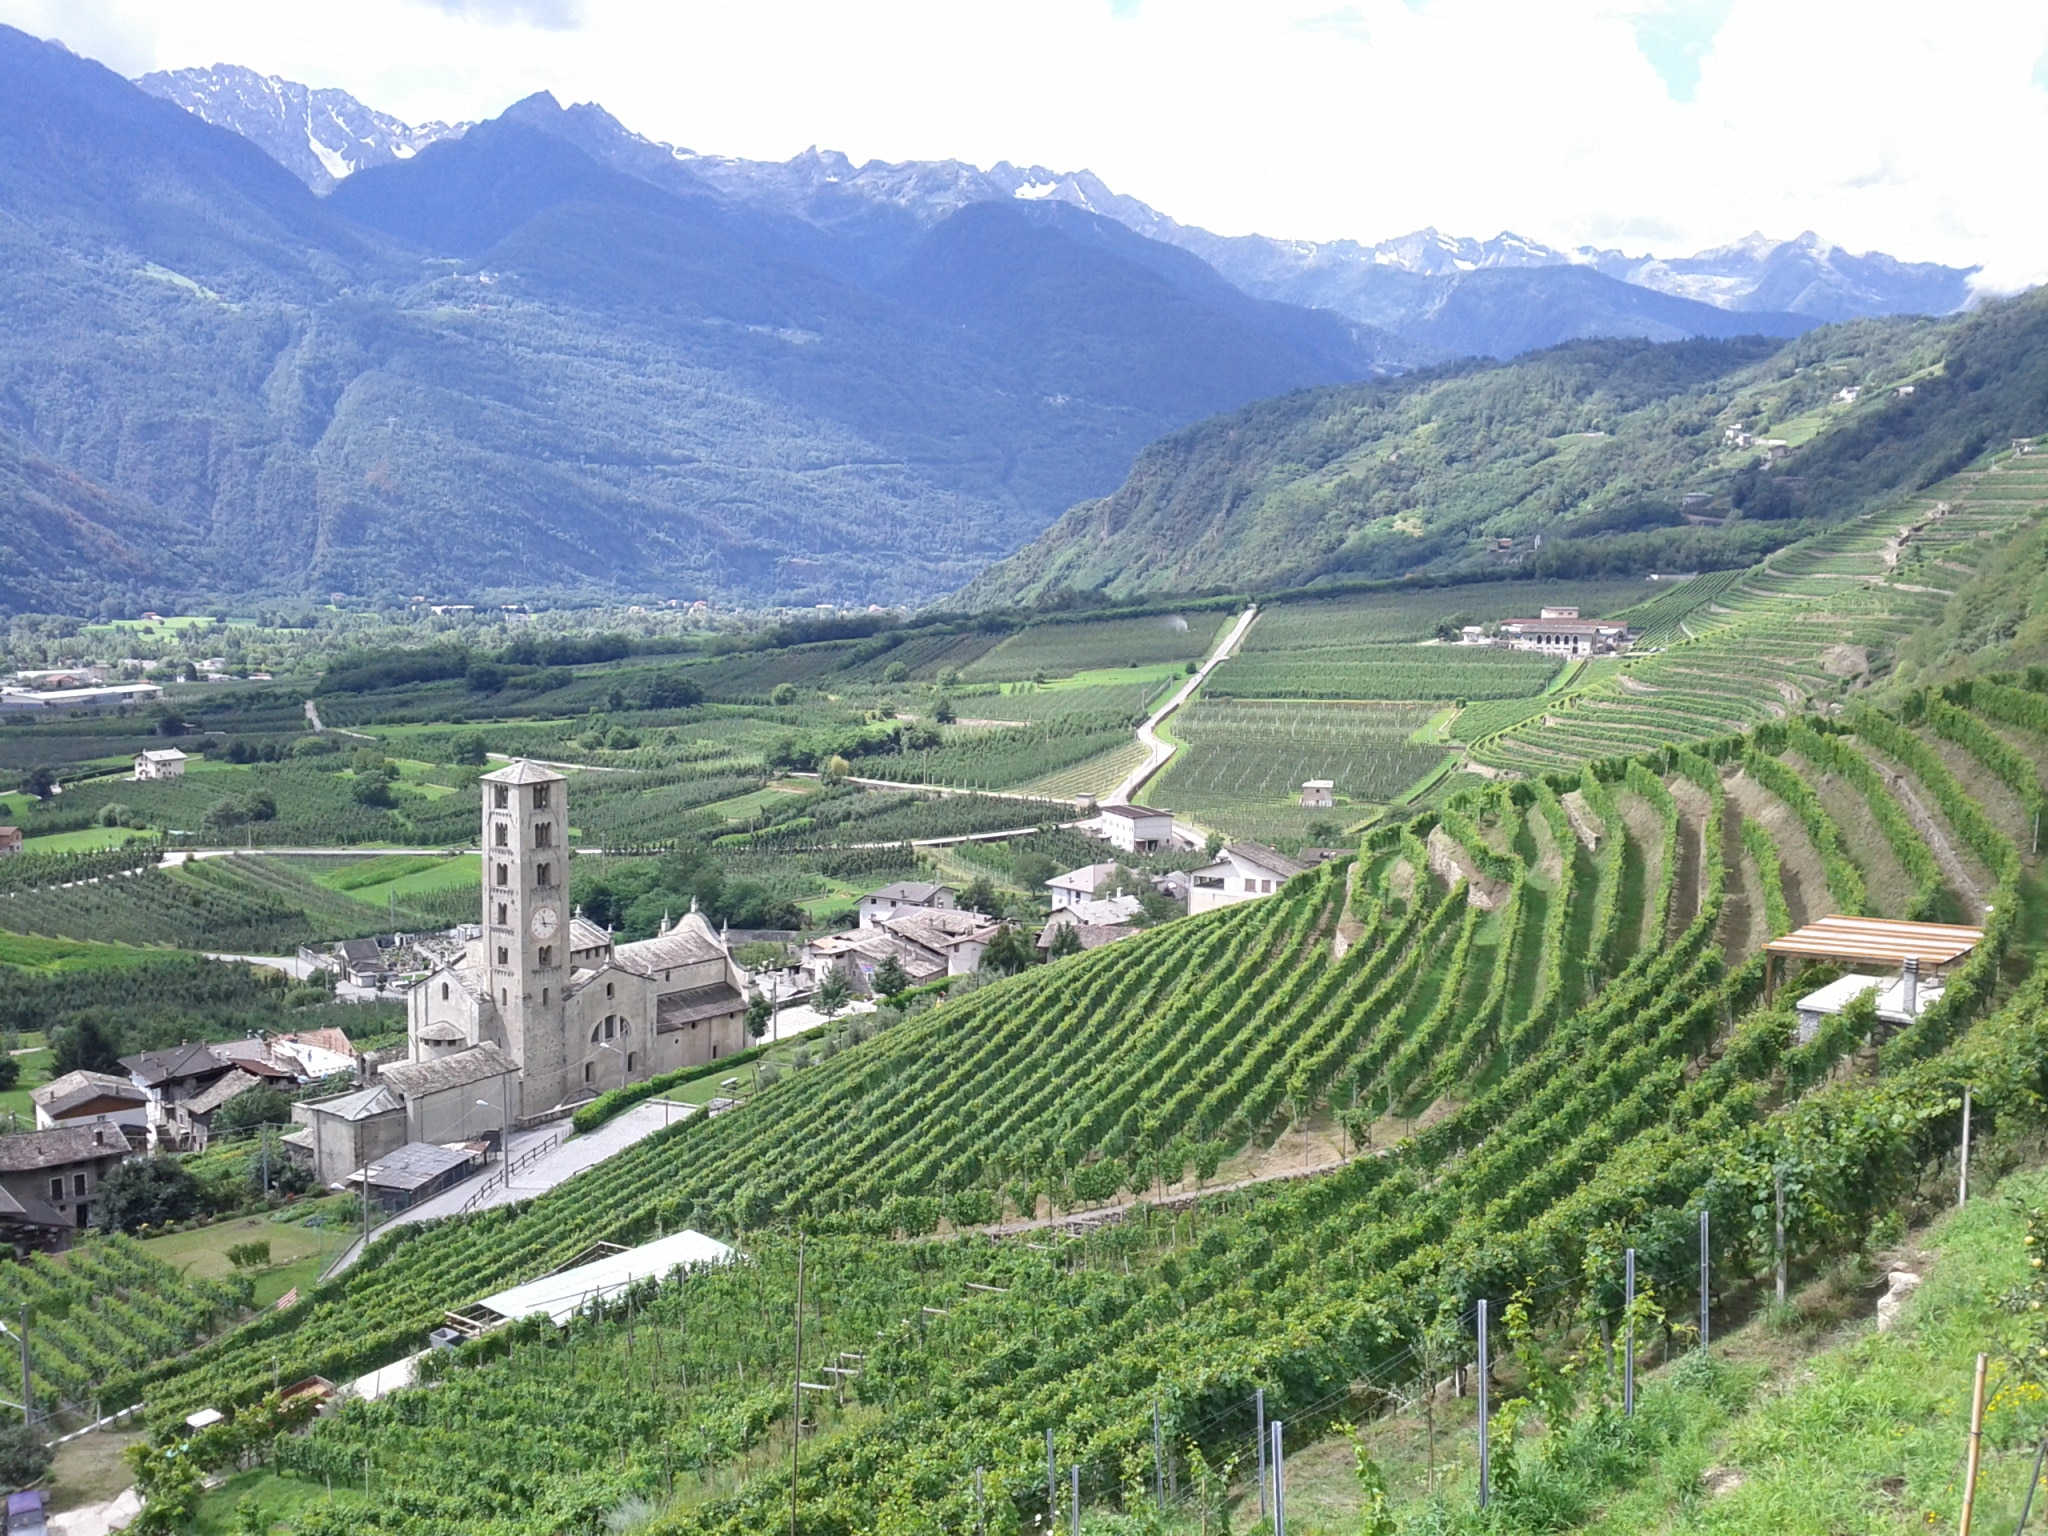 Vineyards above the church in Bianzone, showing the ongoing changeover from vertical to horizontal rows.